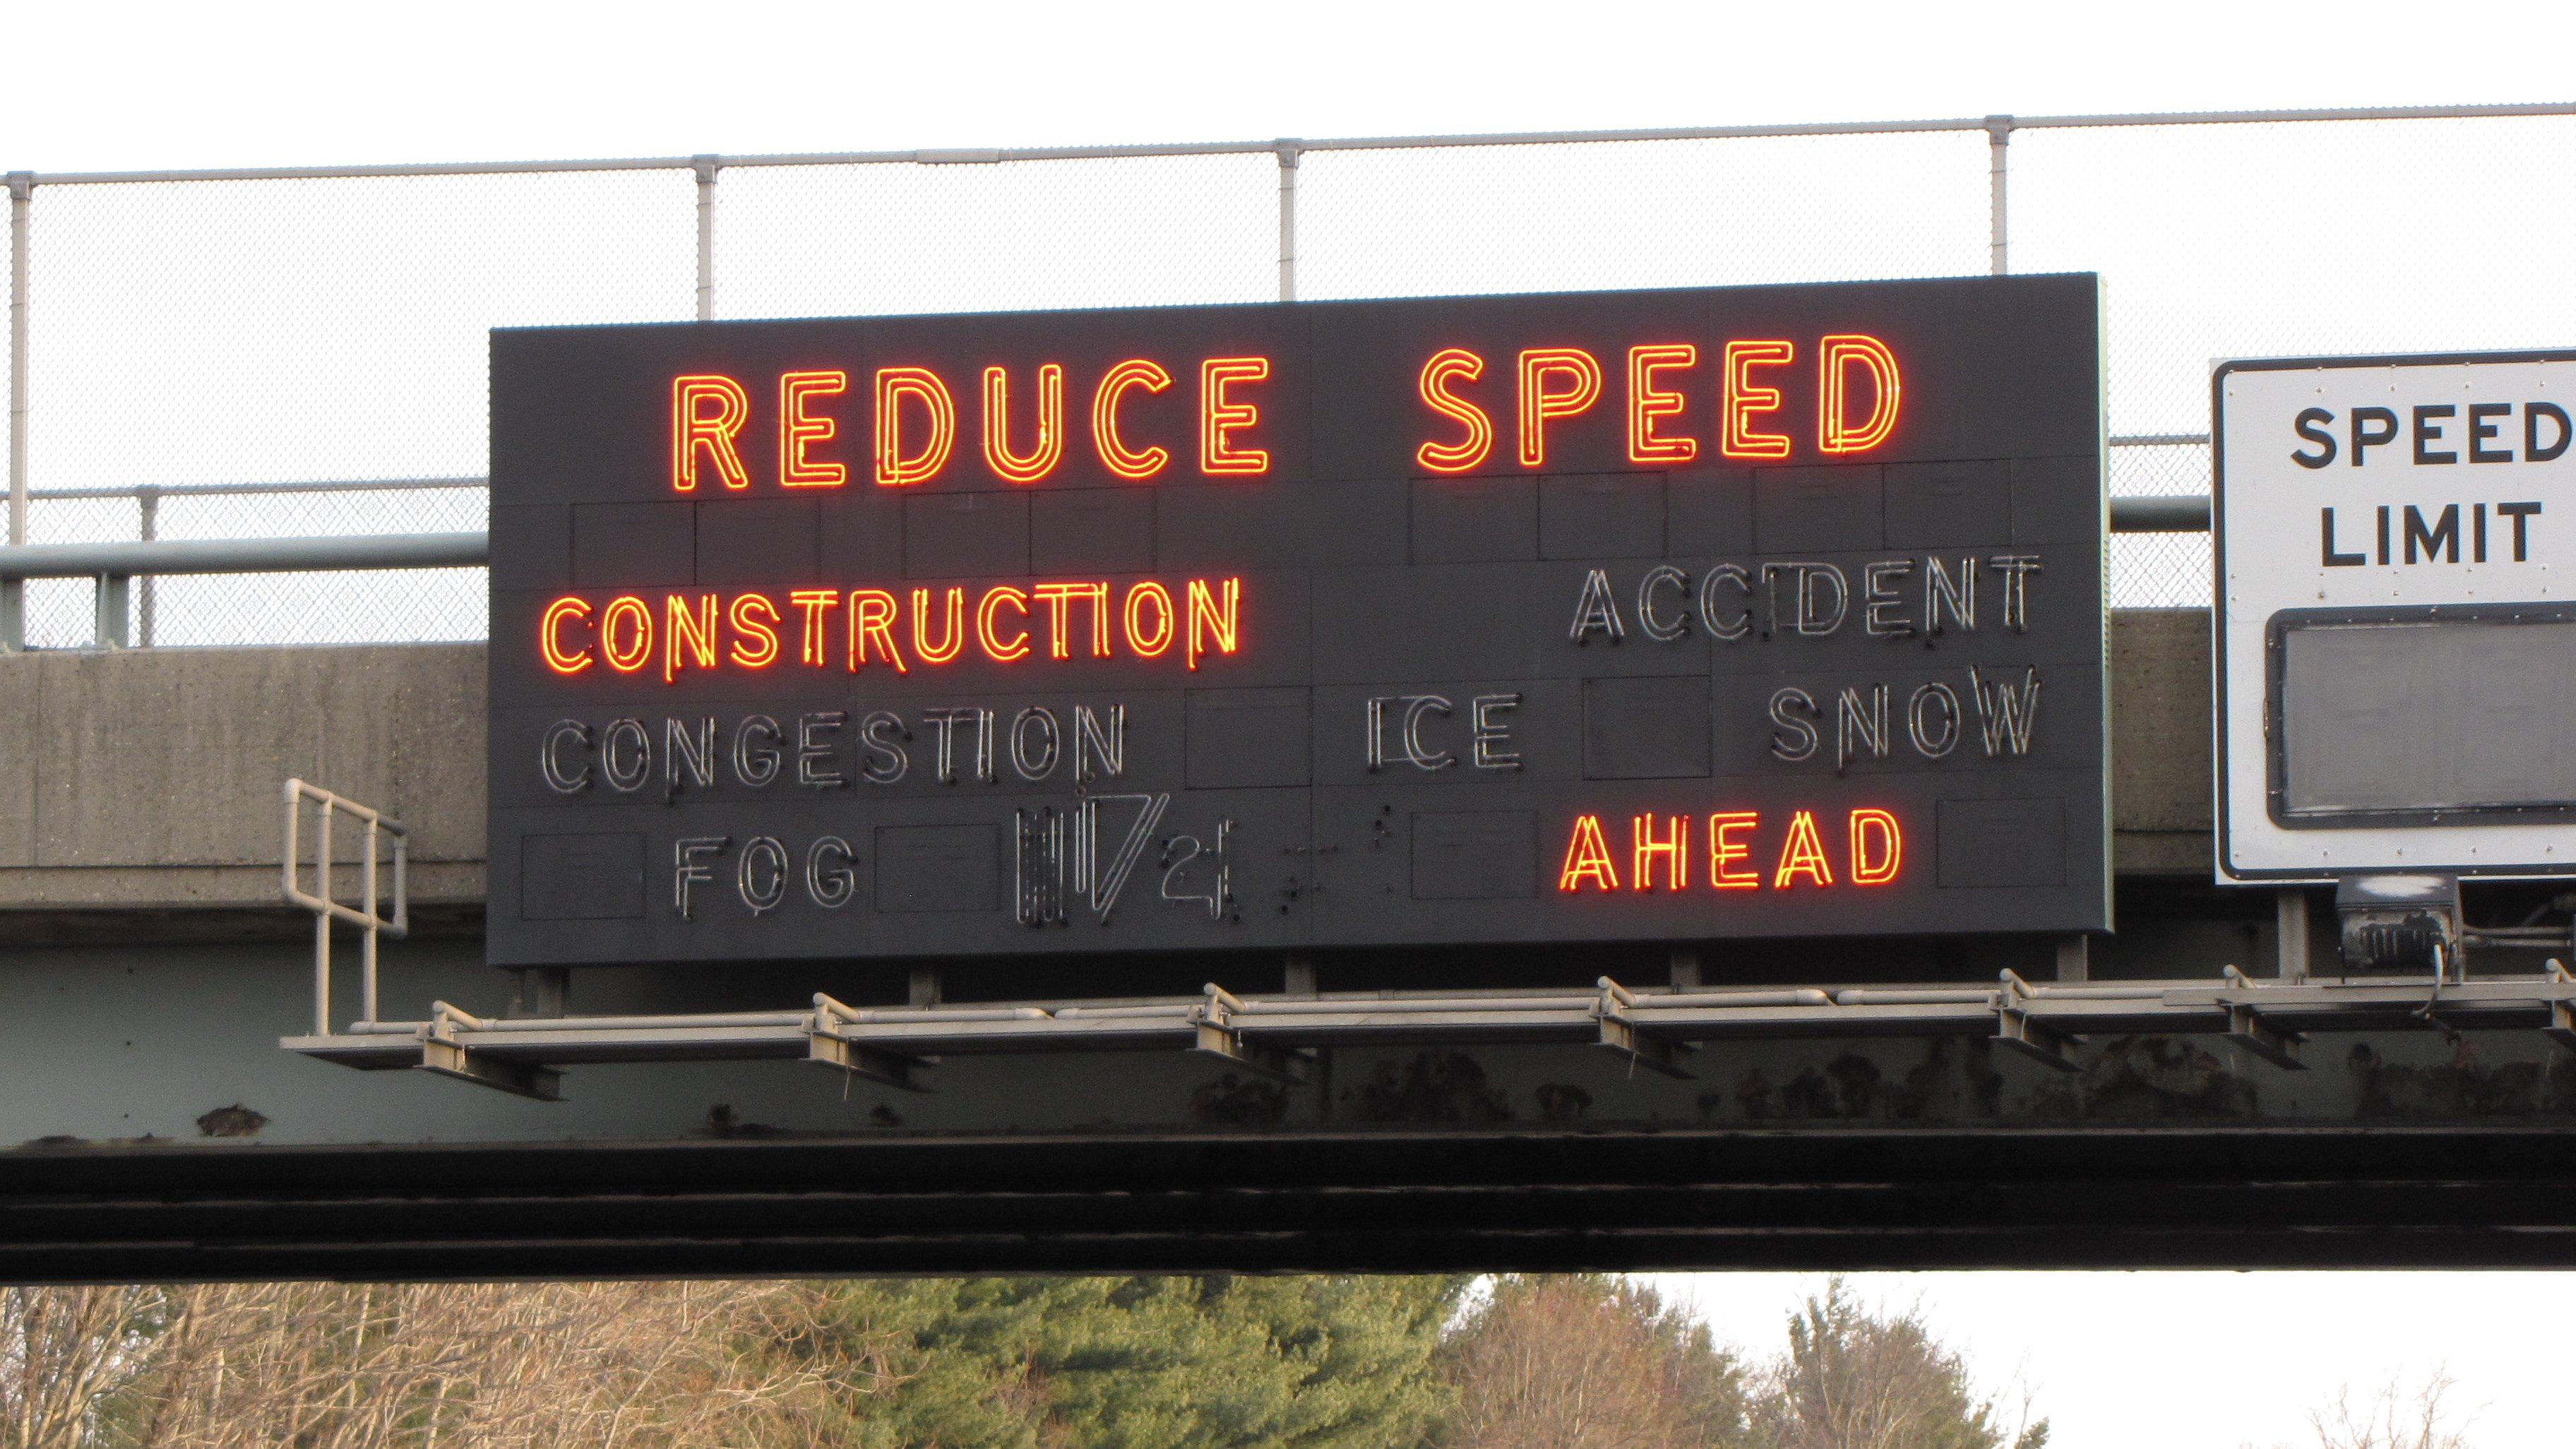 New_Jersey_Turnpike_Reduce_Speed_sign